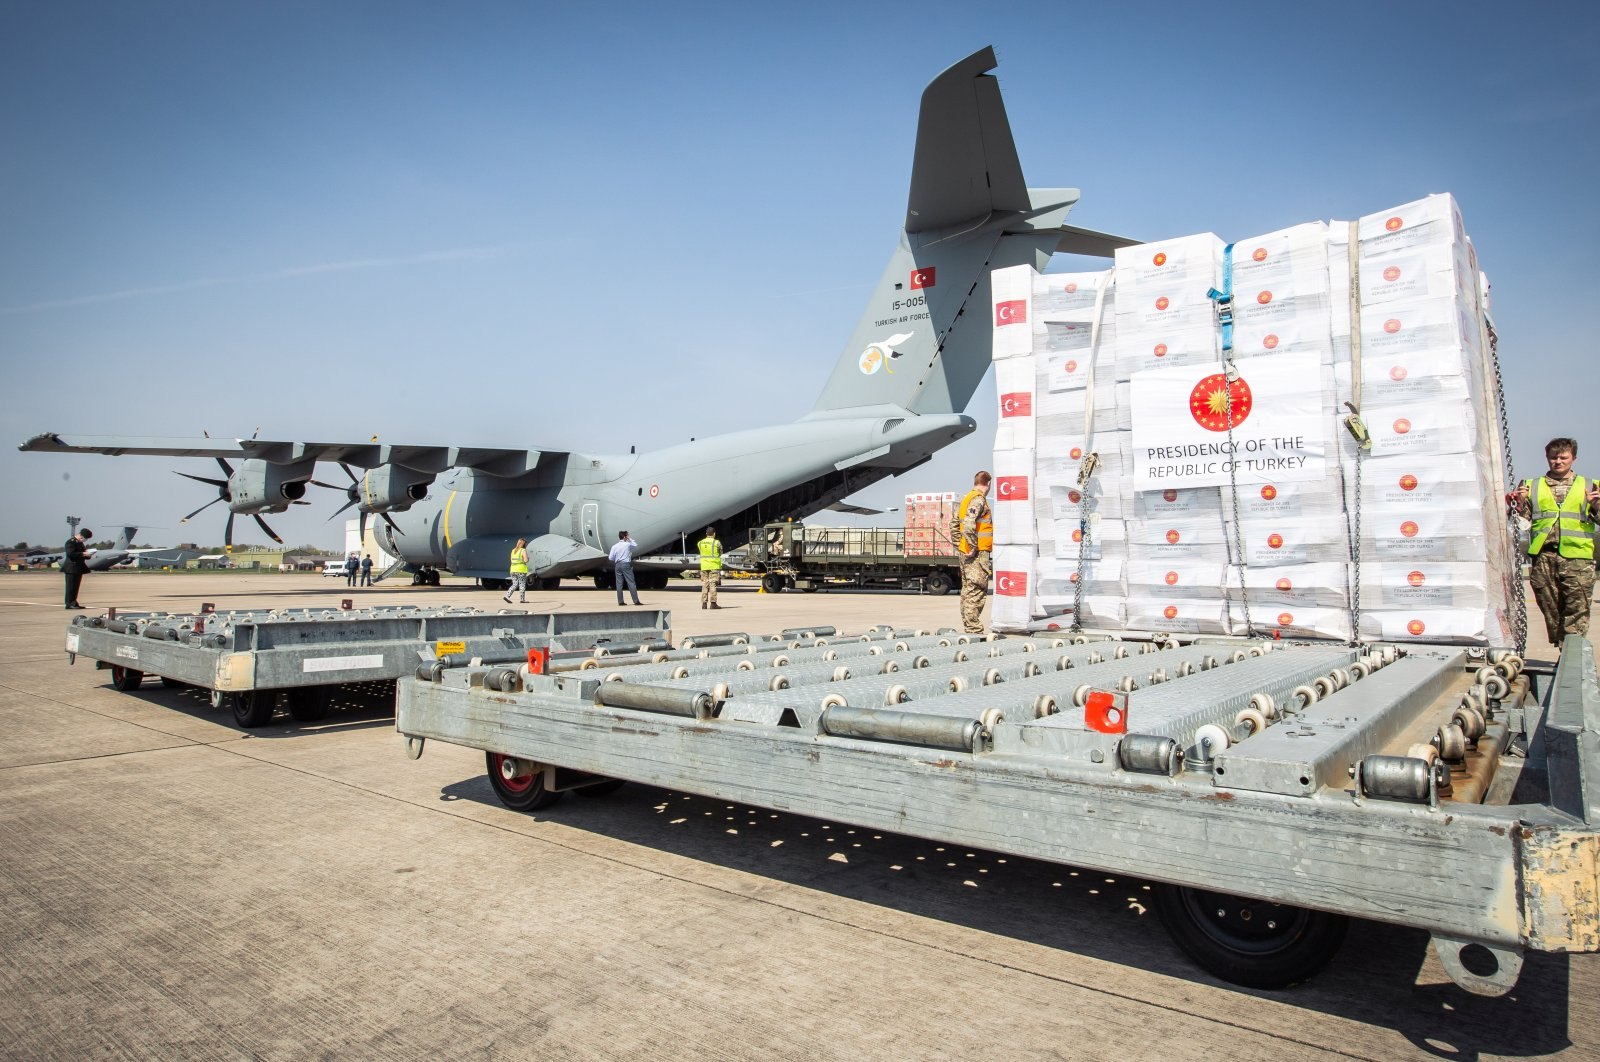 Crucial supplies of personal protective equipment (PPE) for medical staff are delivered from Turkey into a Royal Air Force base for distribution around the country, amid the coronavirus disease (COVID-19) outbreak, in Carterton, Britain, April 10, 2020. (REUTERS Photo)